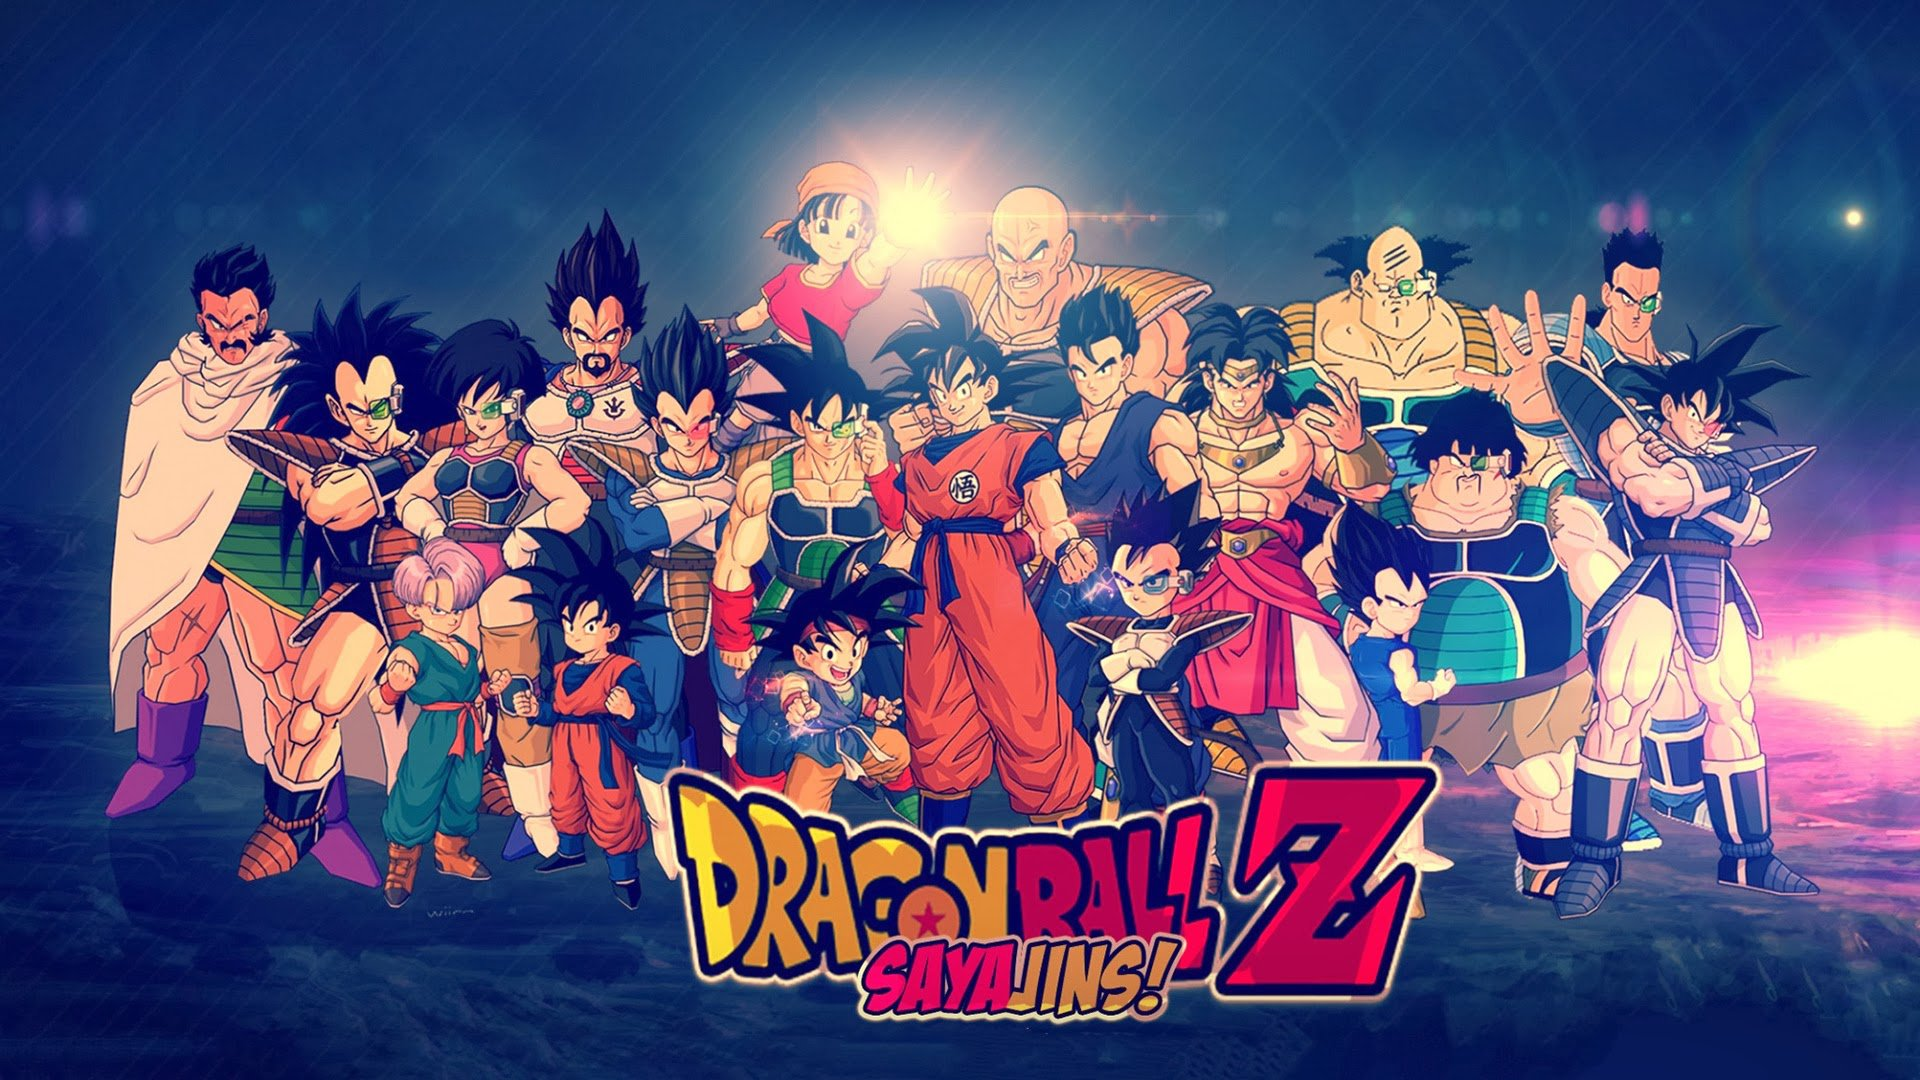 Dragon Ball Z Sayajins HD Wallpaper